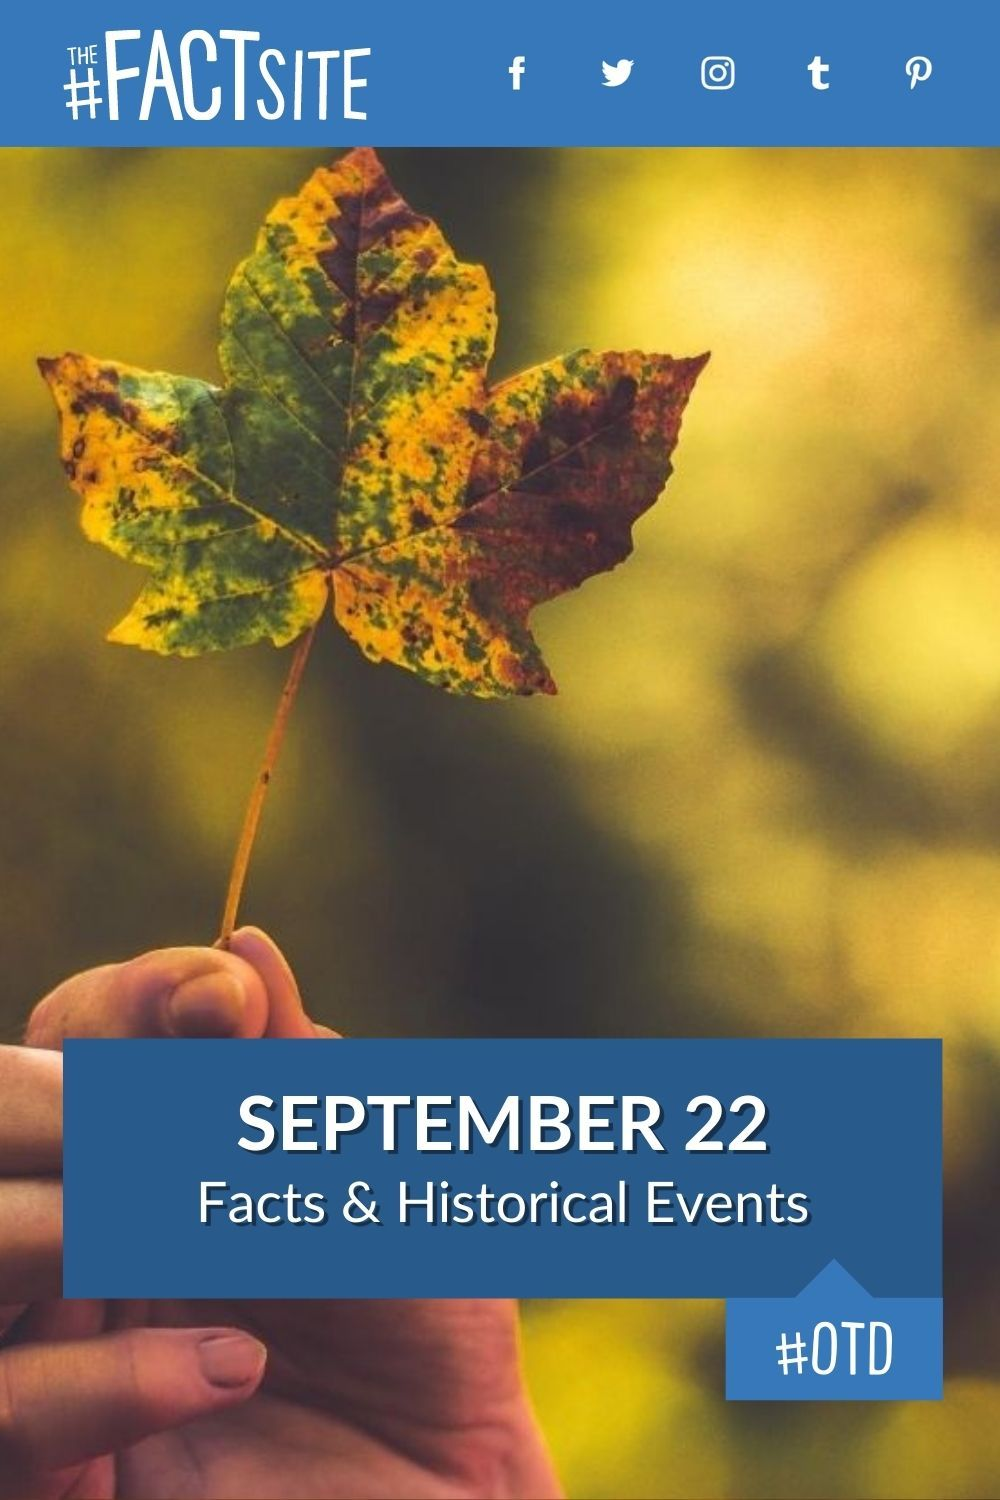 Facts & Historic Events That Happened on September 22